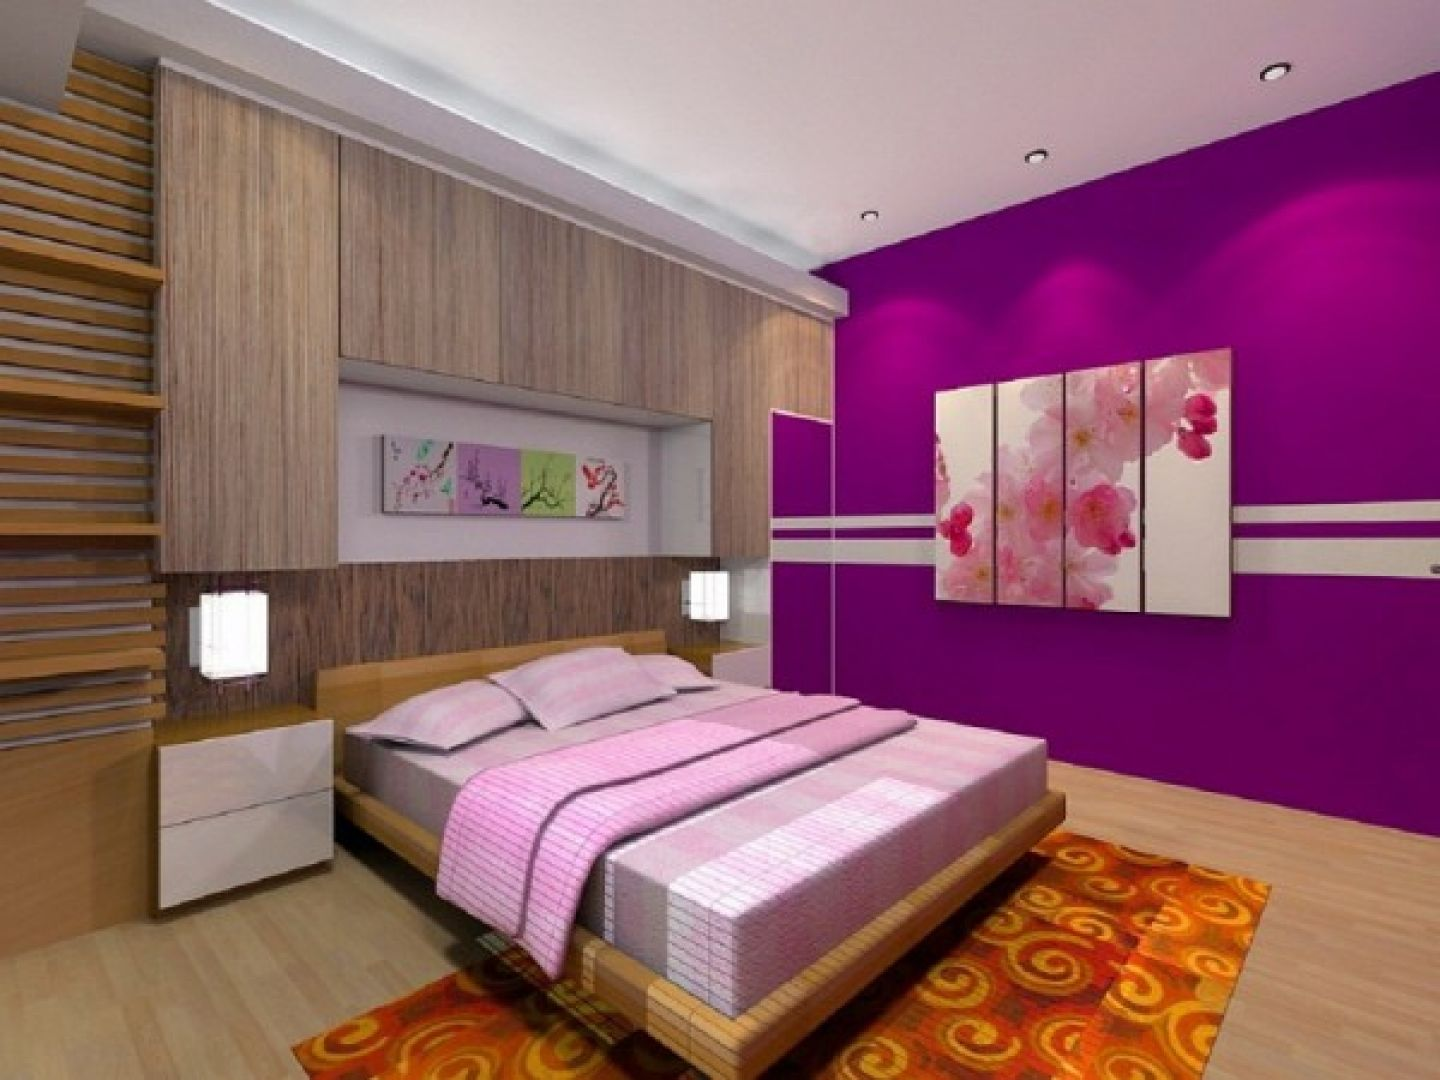 Paint colors for bedrooms purple - Bedroom Cool Bedroom Design For Women In Their 20s With Purple Color Schemes And Modern